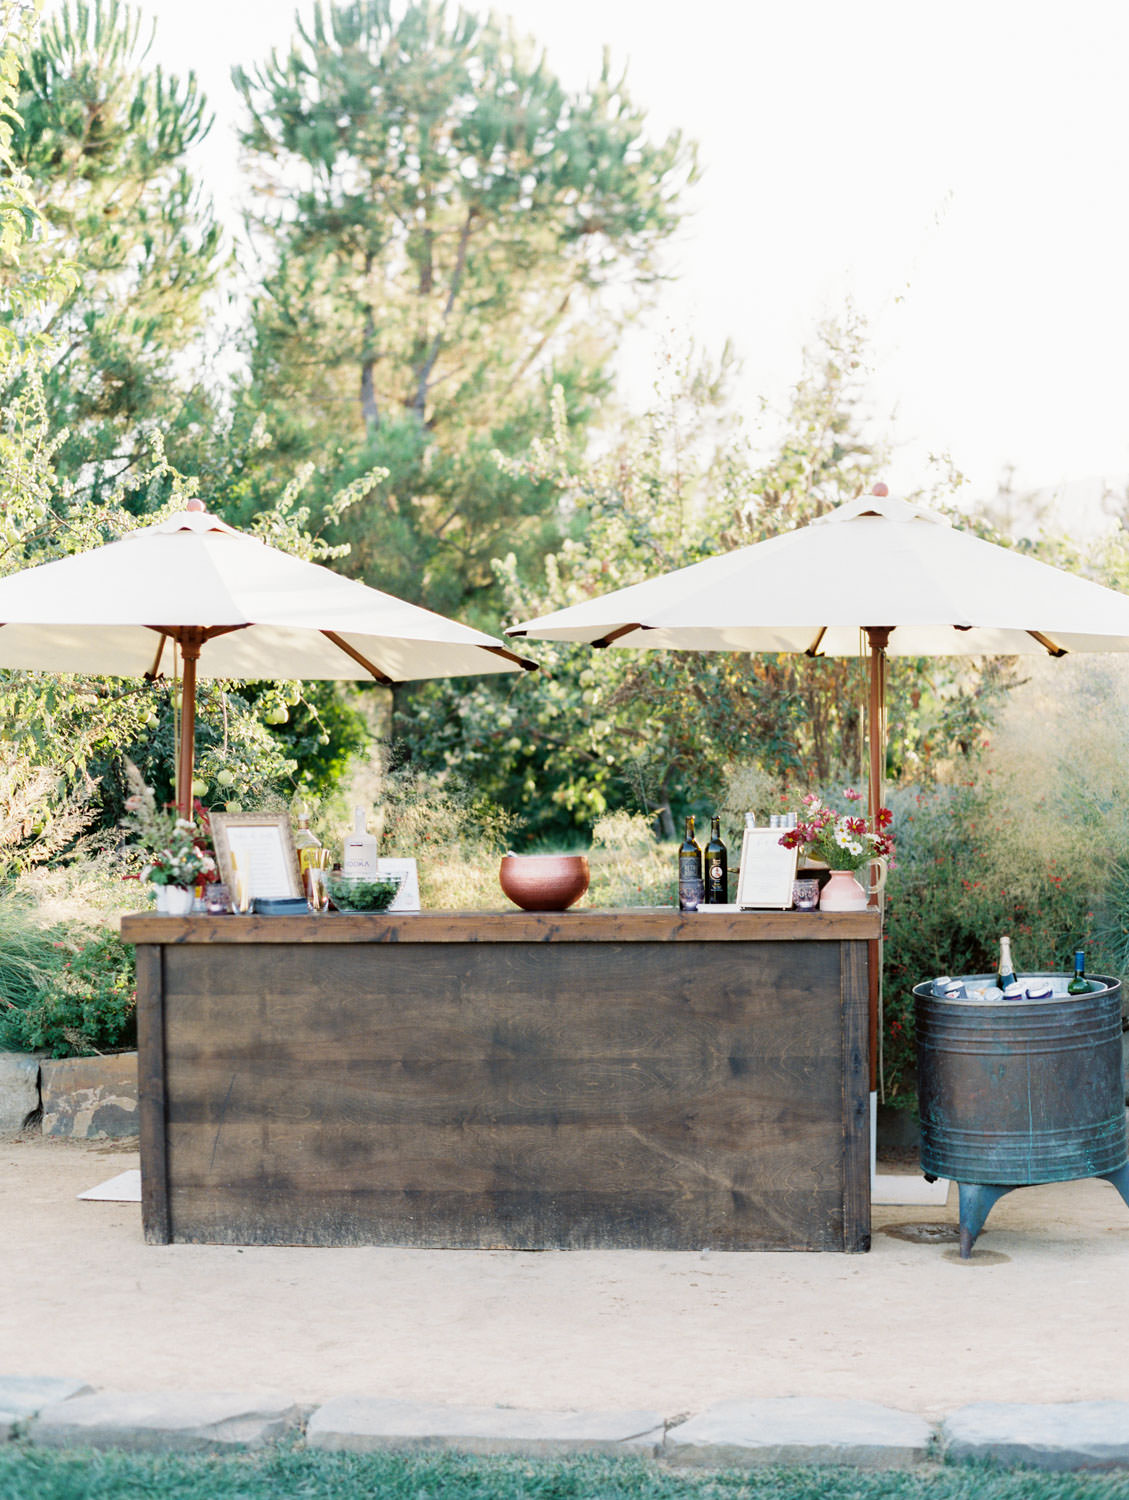 Wooden cocktail hour bar with umbrellas. Full Belly Farm reception by film photographer Cavin Elizabeth Photography